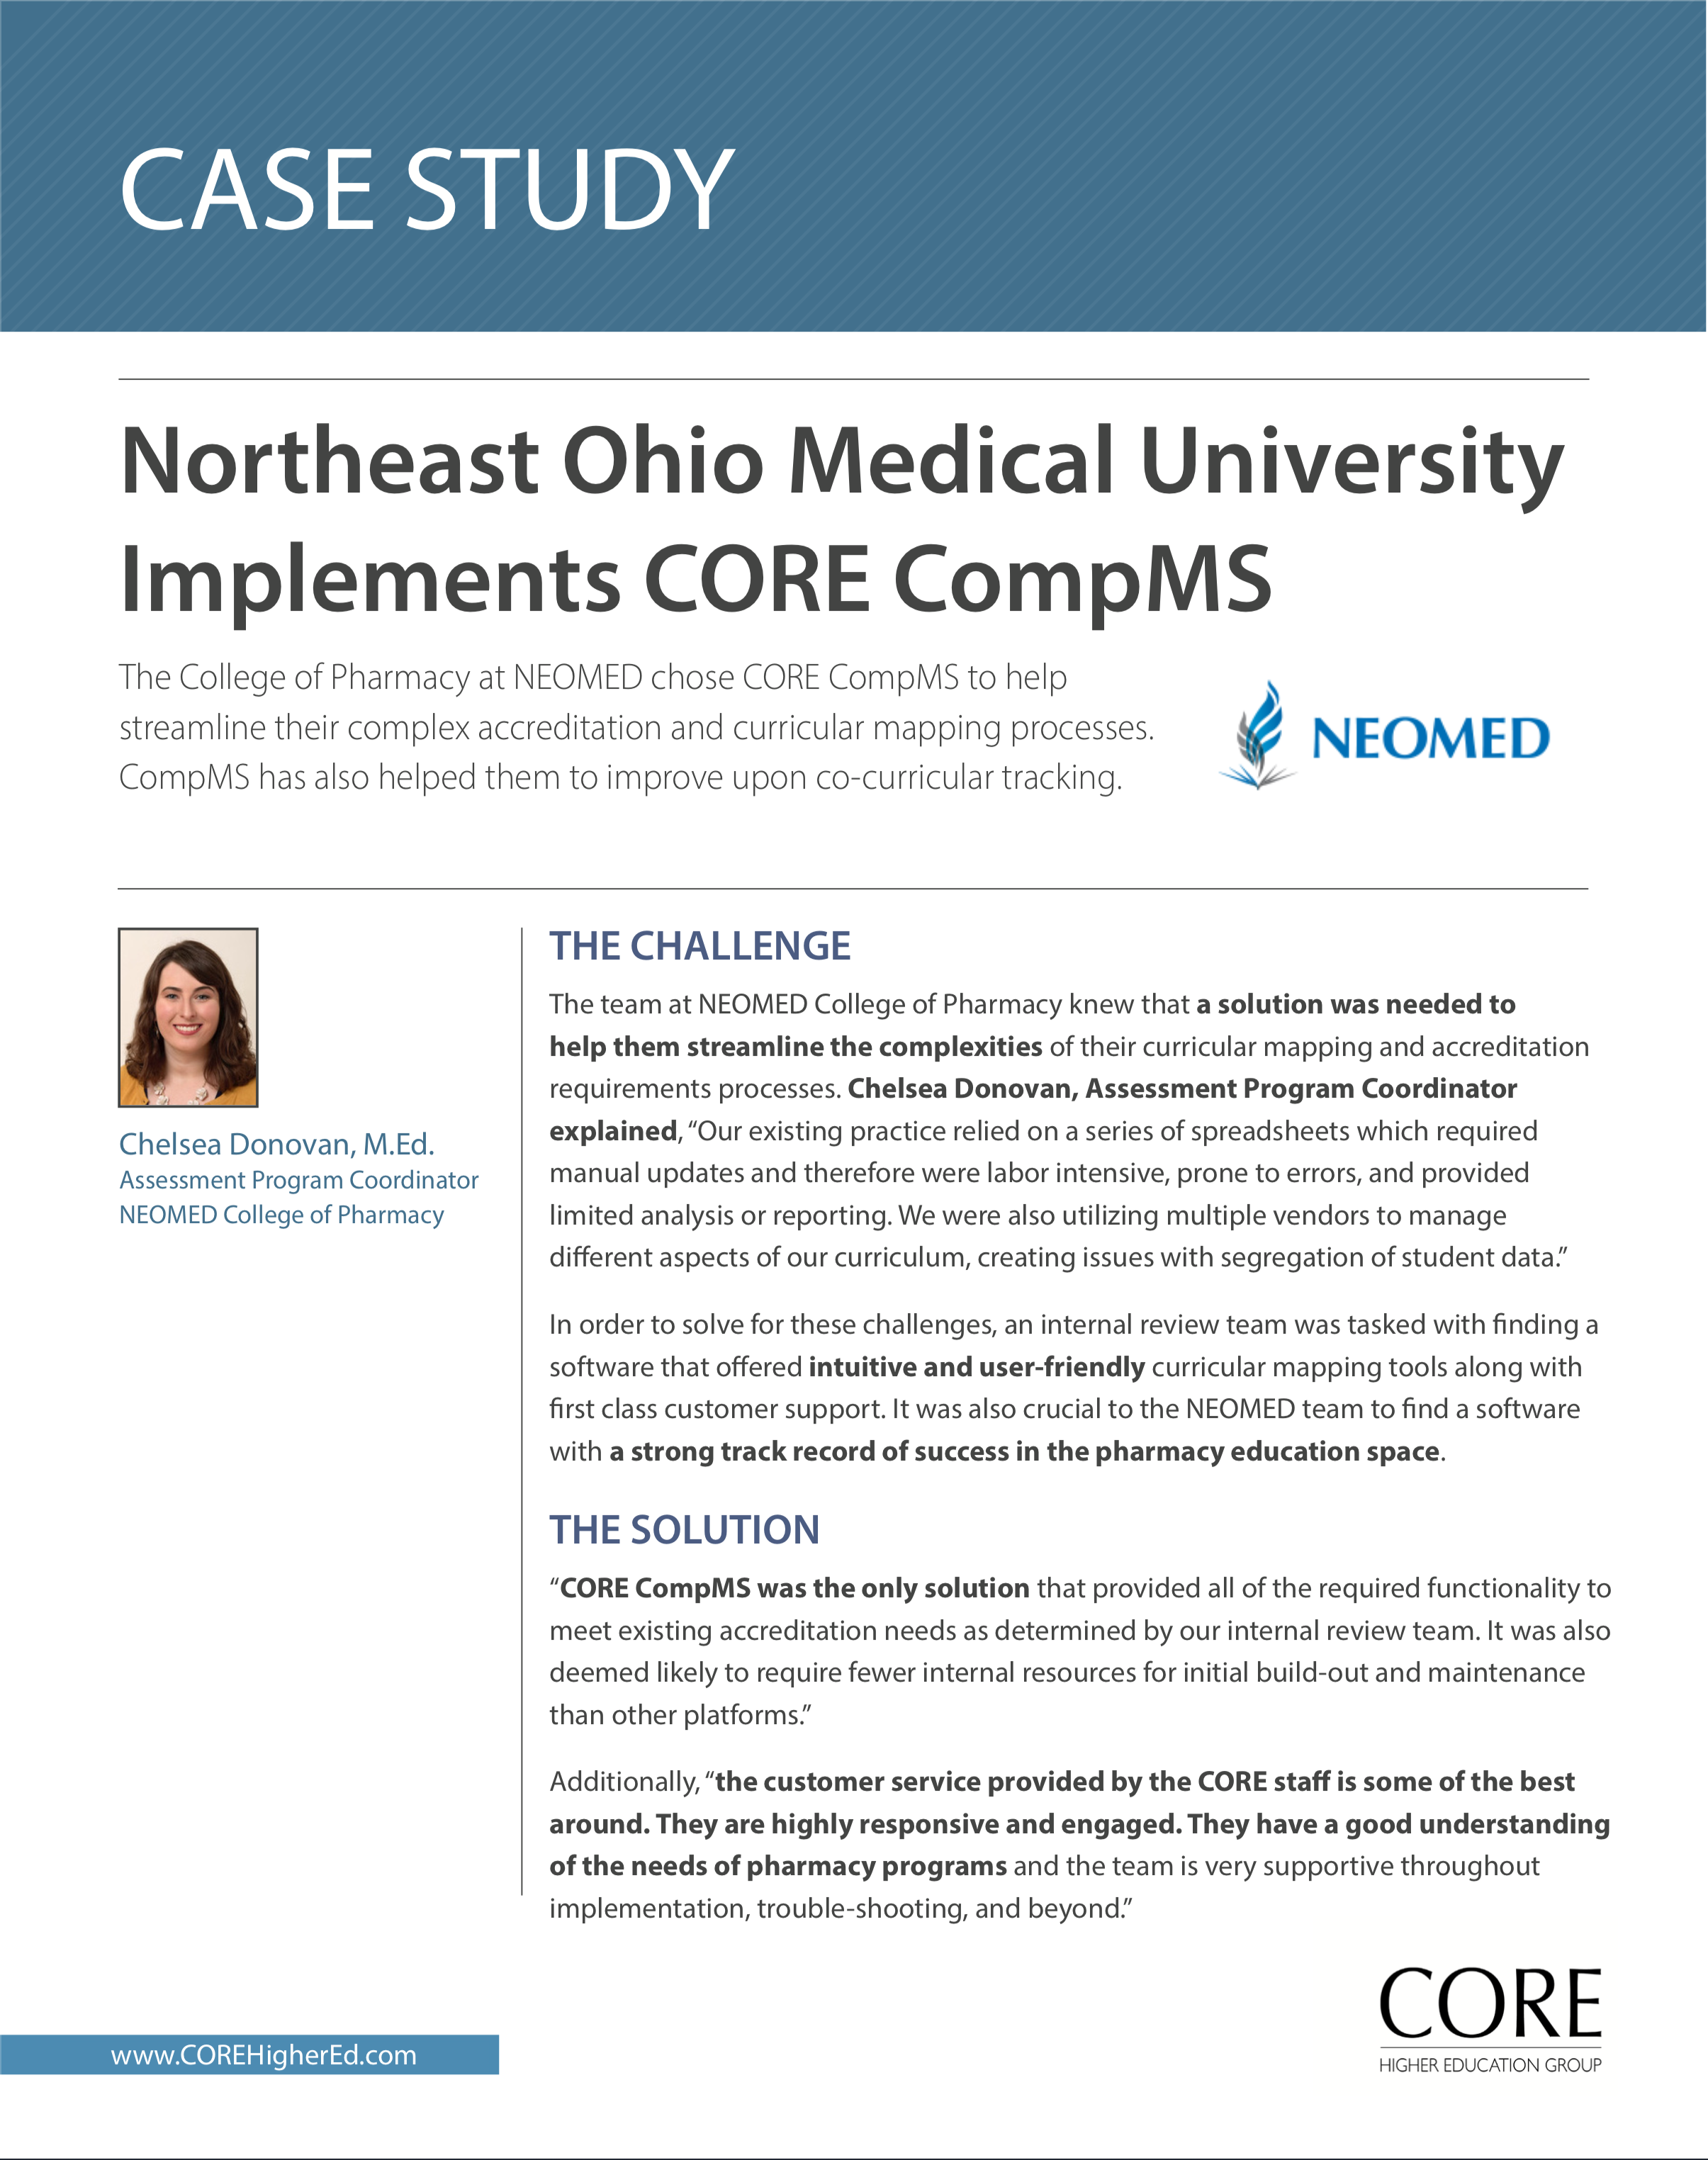 NEOMED Case Study